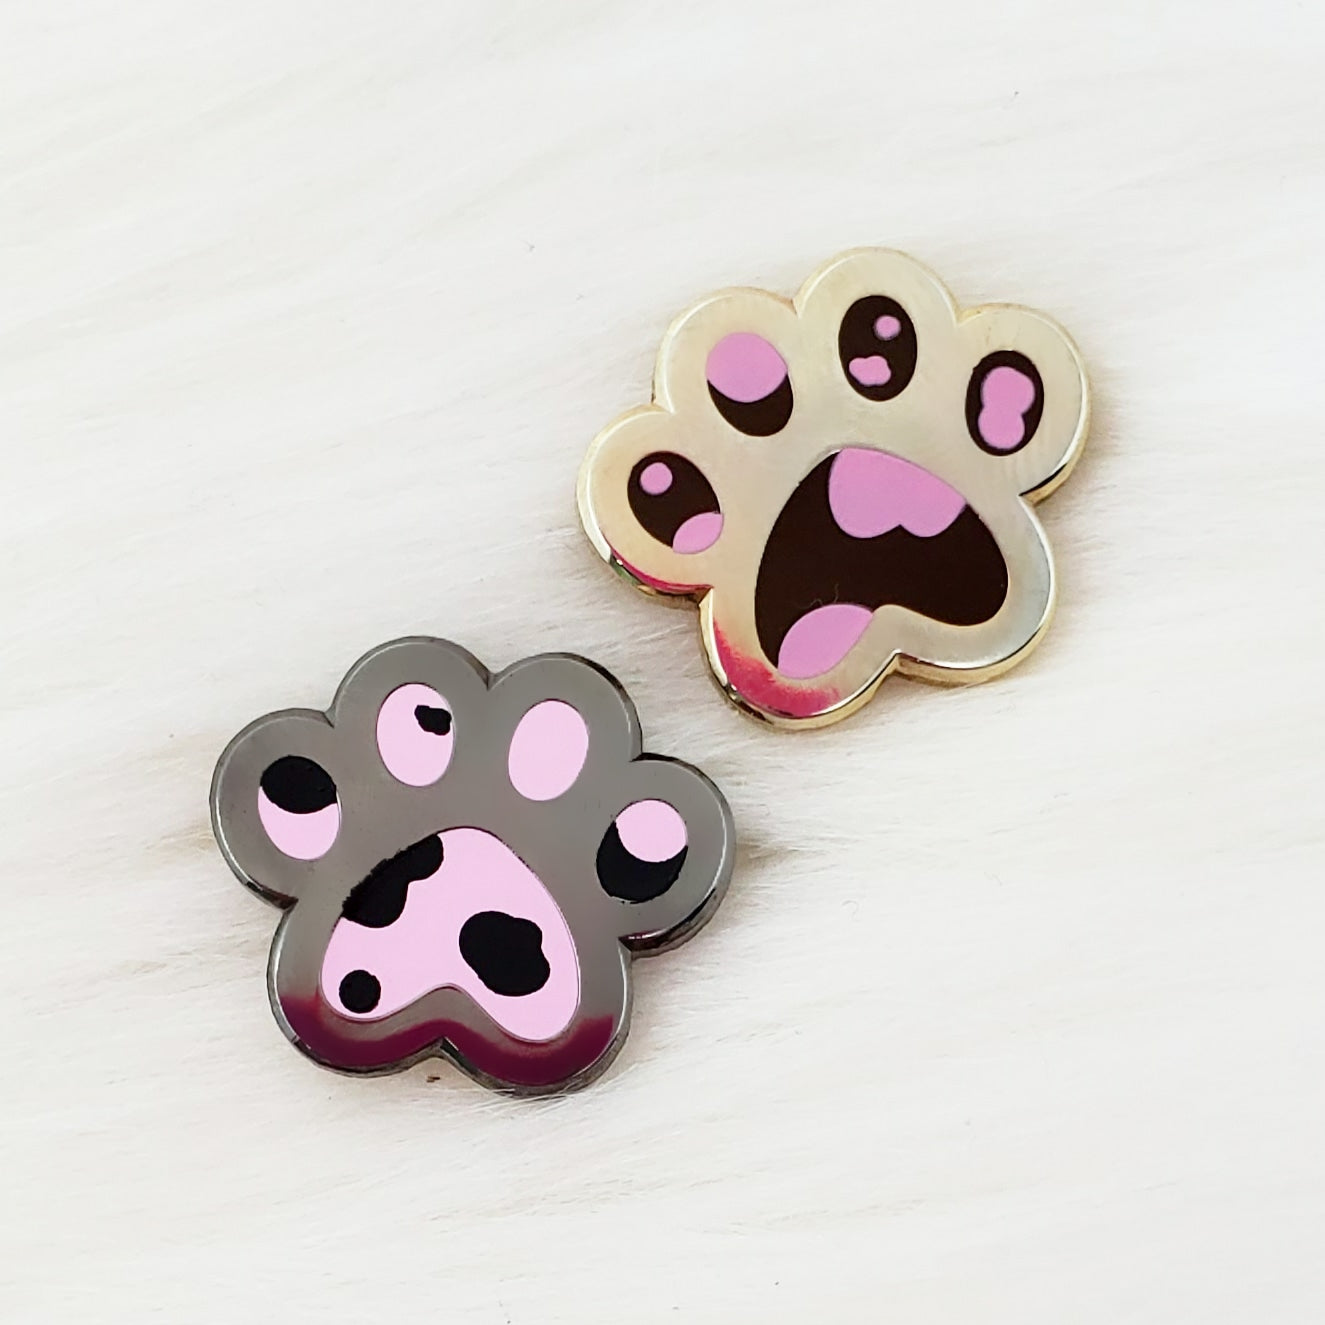 ♡ Lil Paws Board Filler Enamel Pins ♡